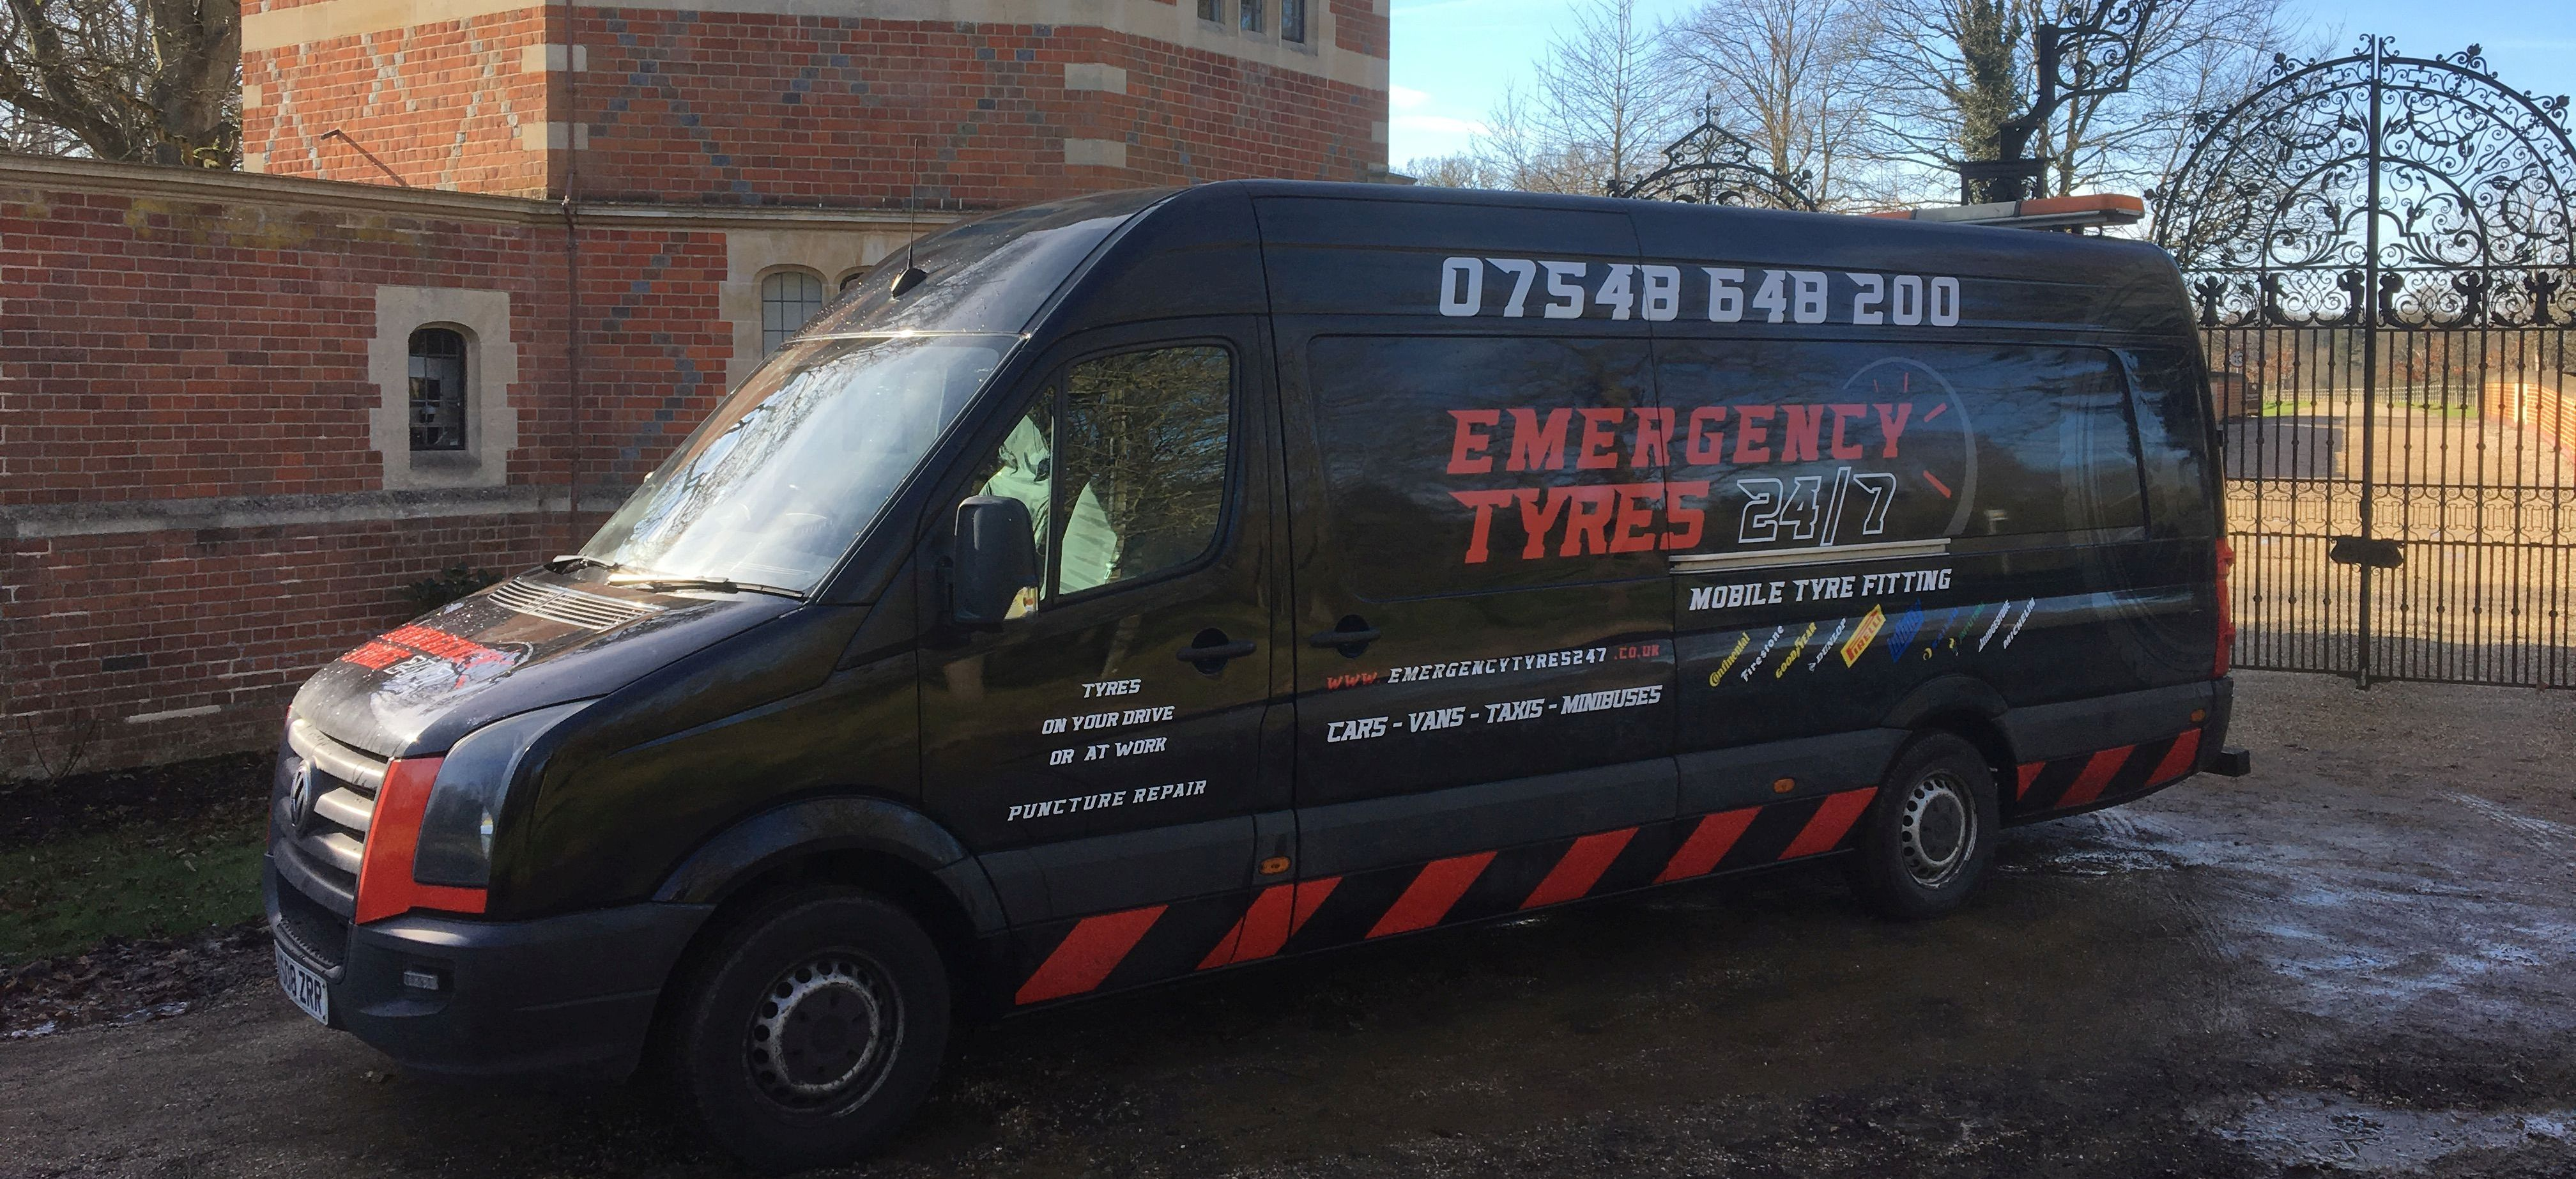 Welcome to Emergency Tyres 24/7 - 24 Hour Emergency Mobile Tyre & Mobile Puncture Repair based in North London